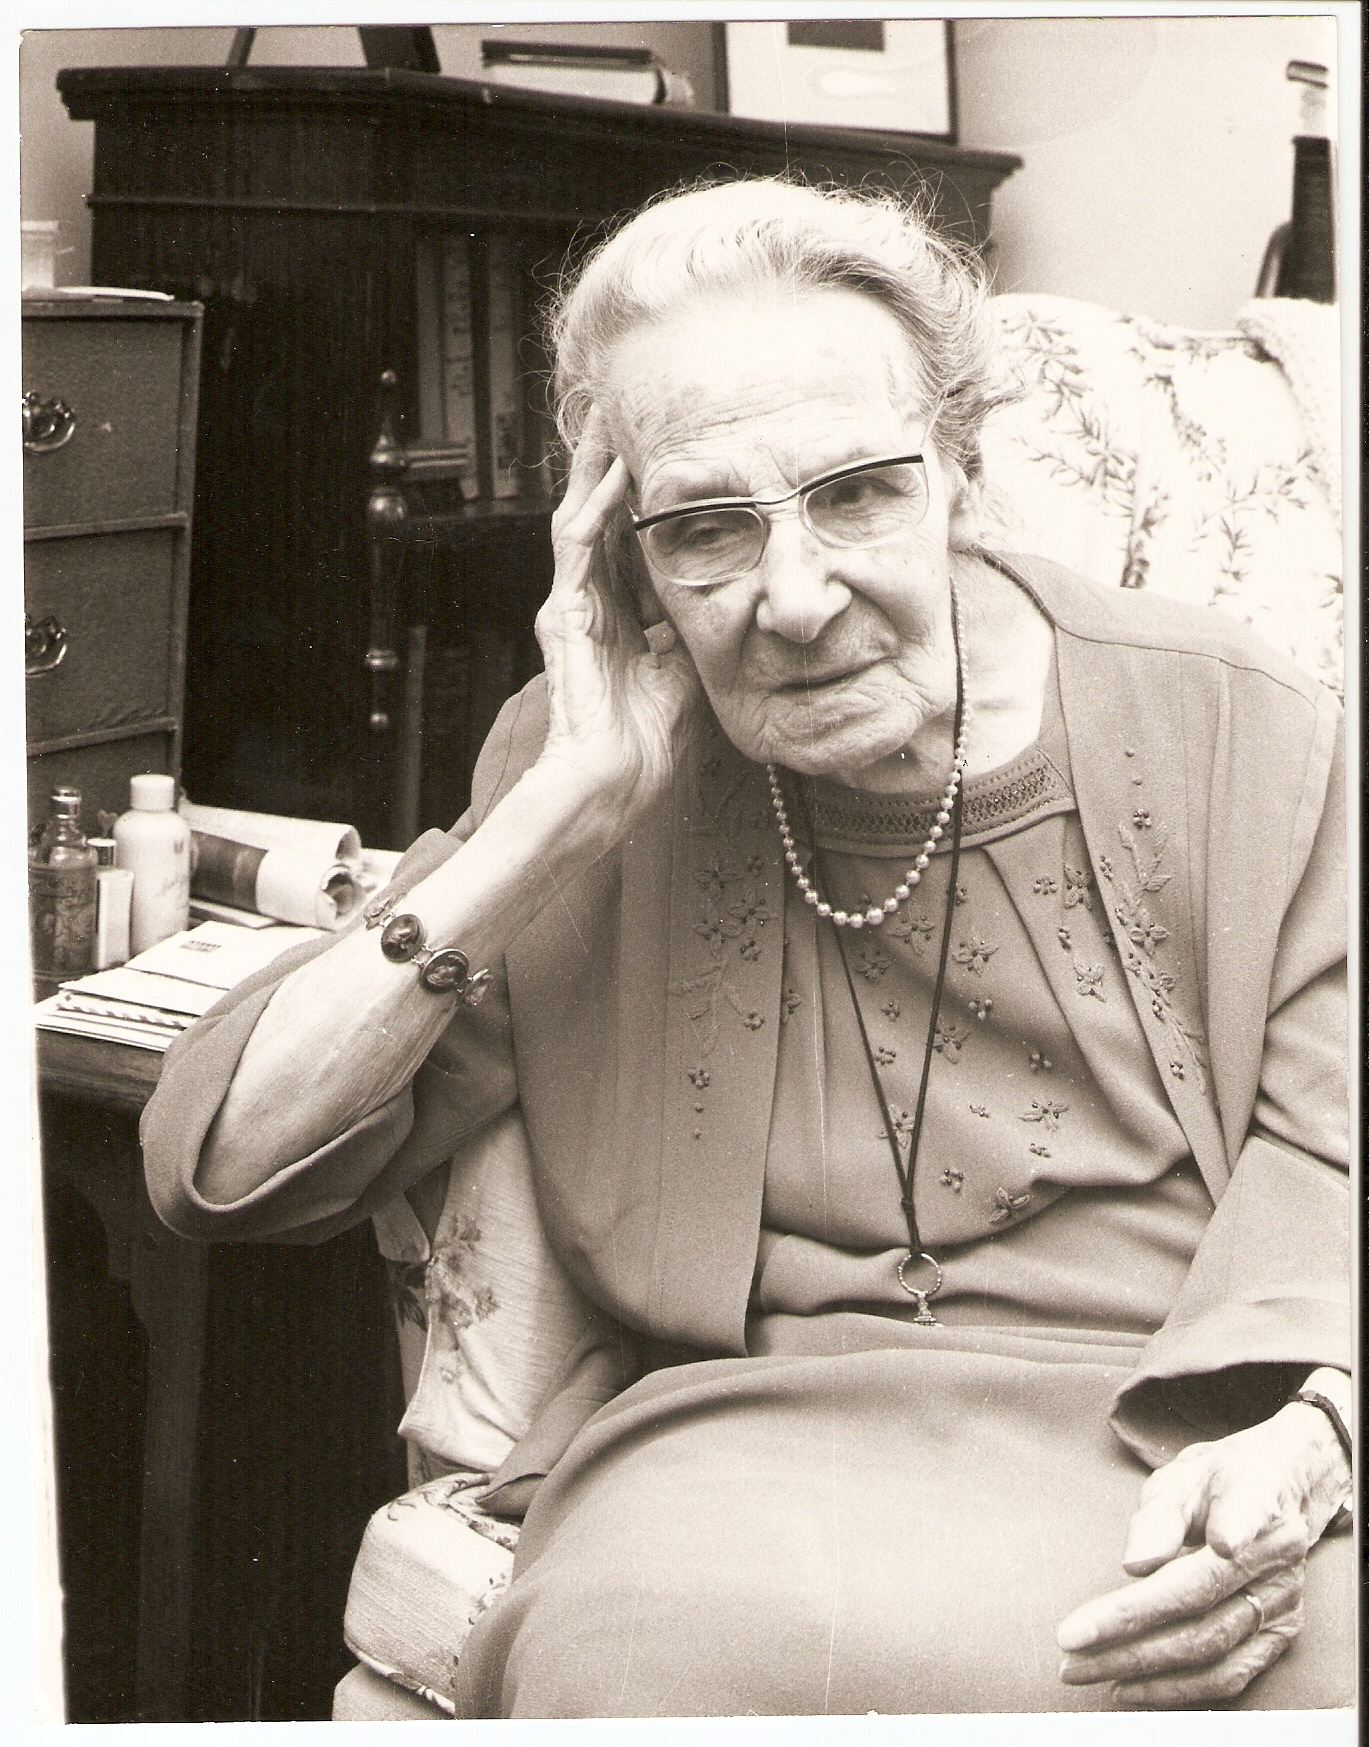 Image of Alice Seeley from Wikidata